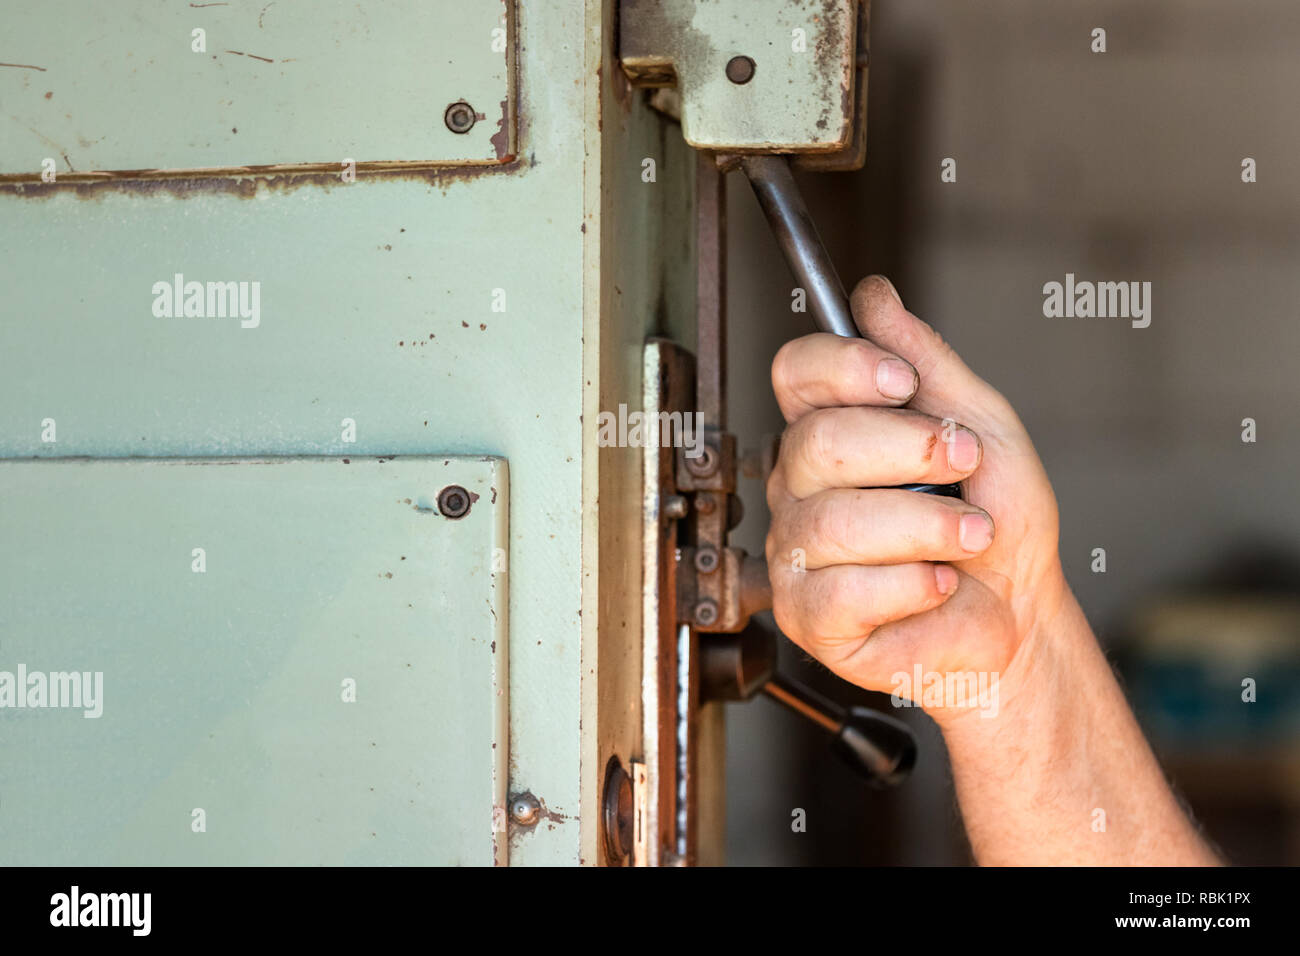 A male worker operating an industrial toggle switch. - Stock Image